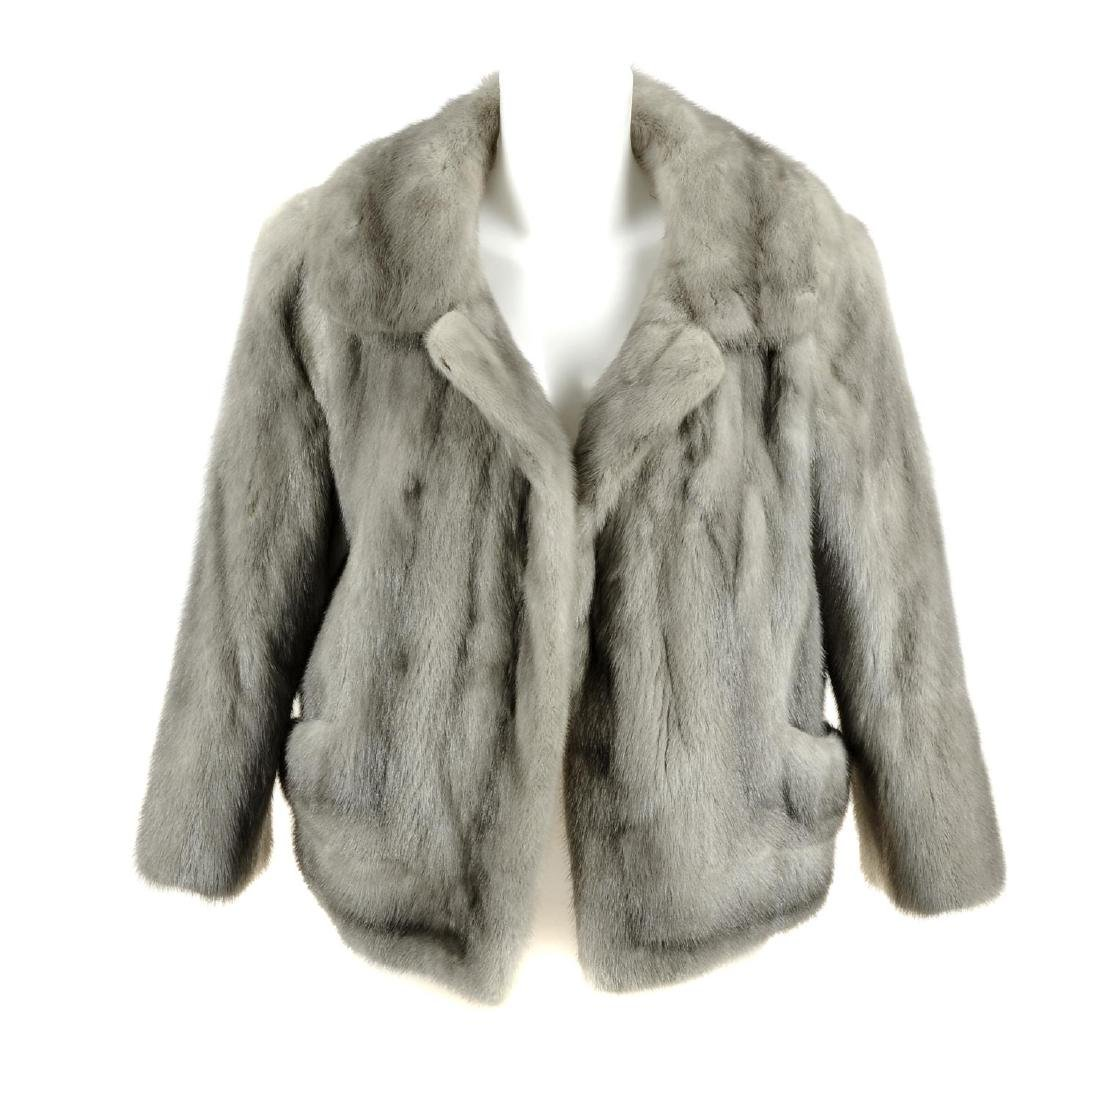 A sapphire mink jacket. The open front jacket designed